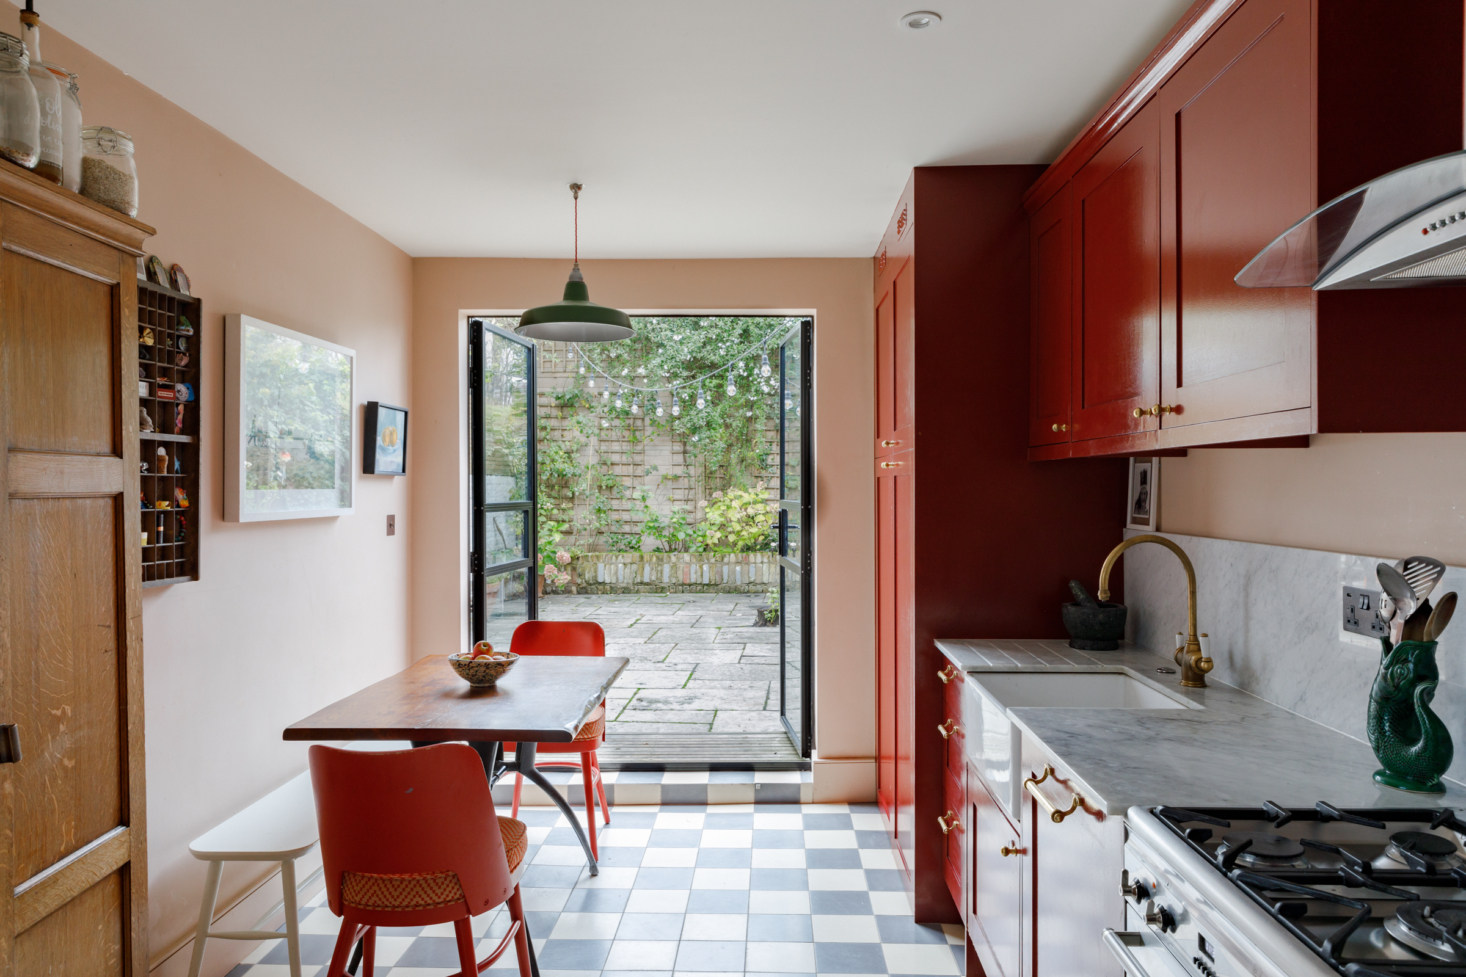 Kitchen of the Week: Going Big with Color in a Small Space